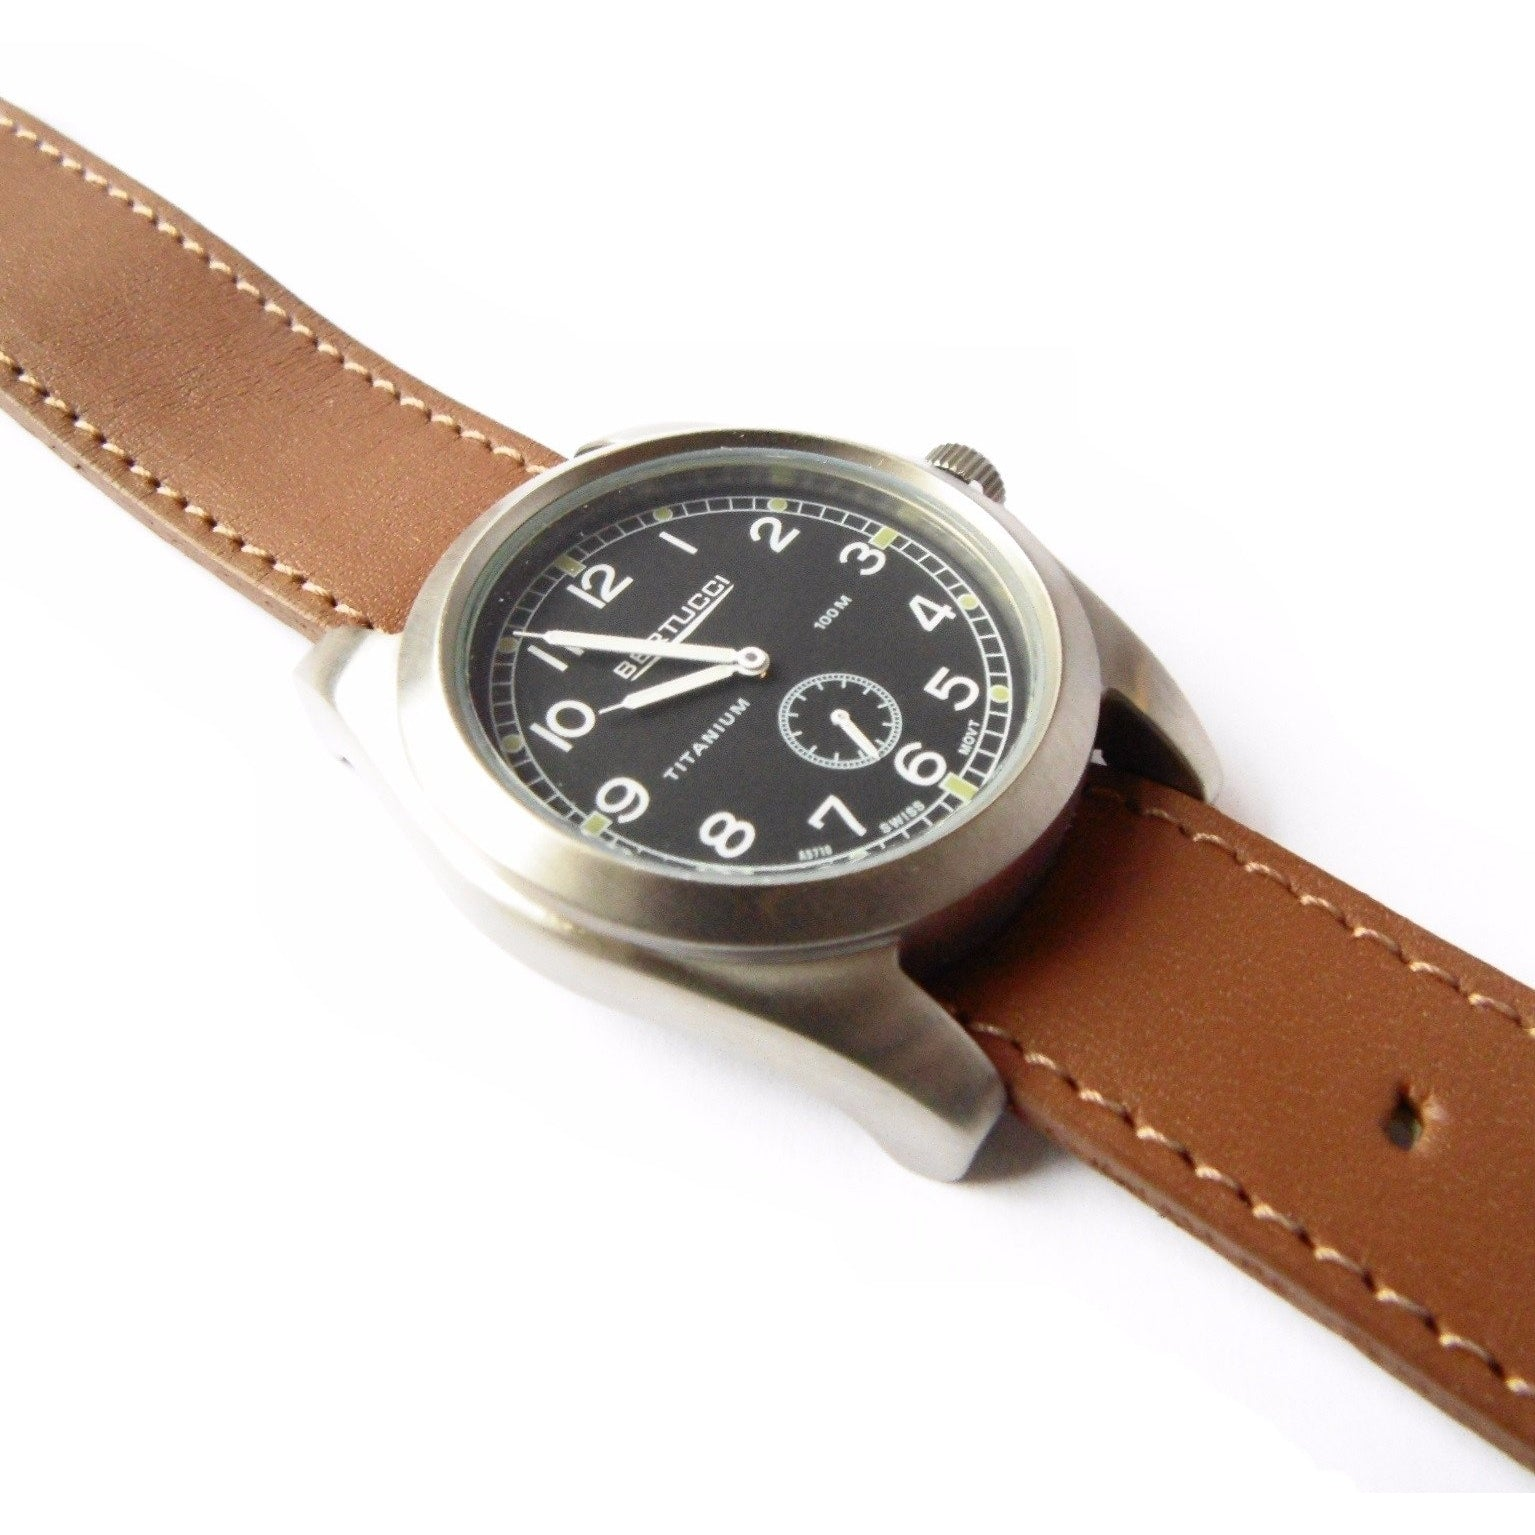 Bertucci 13301 A-3T 42 Vintage Watch (Leather Strap) - Watchfinder General - UK suppliers of Russian Vostok Parnis Watches MWC G10  - 2